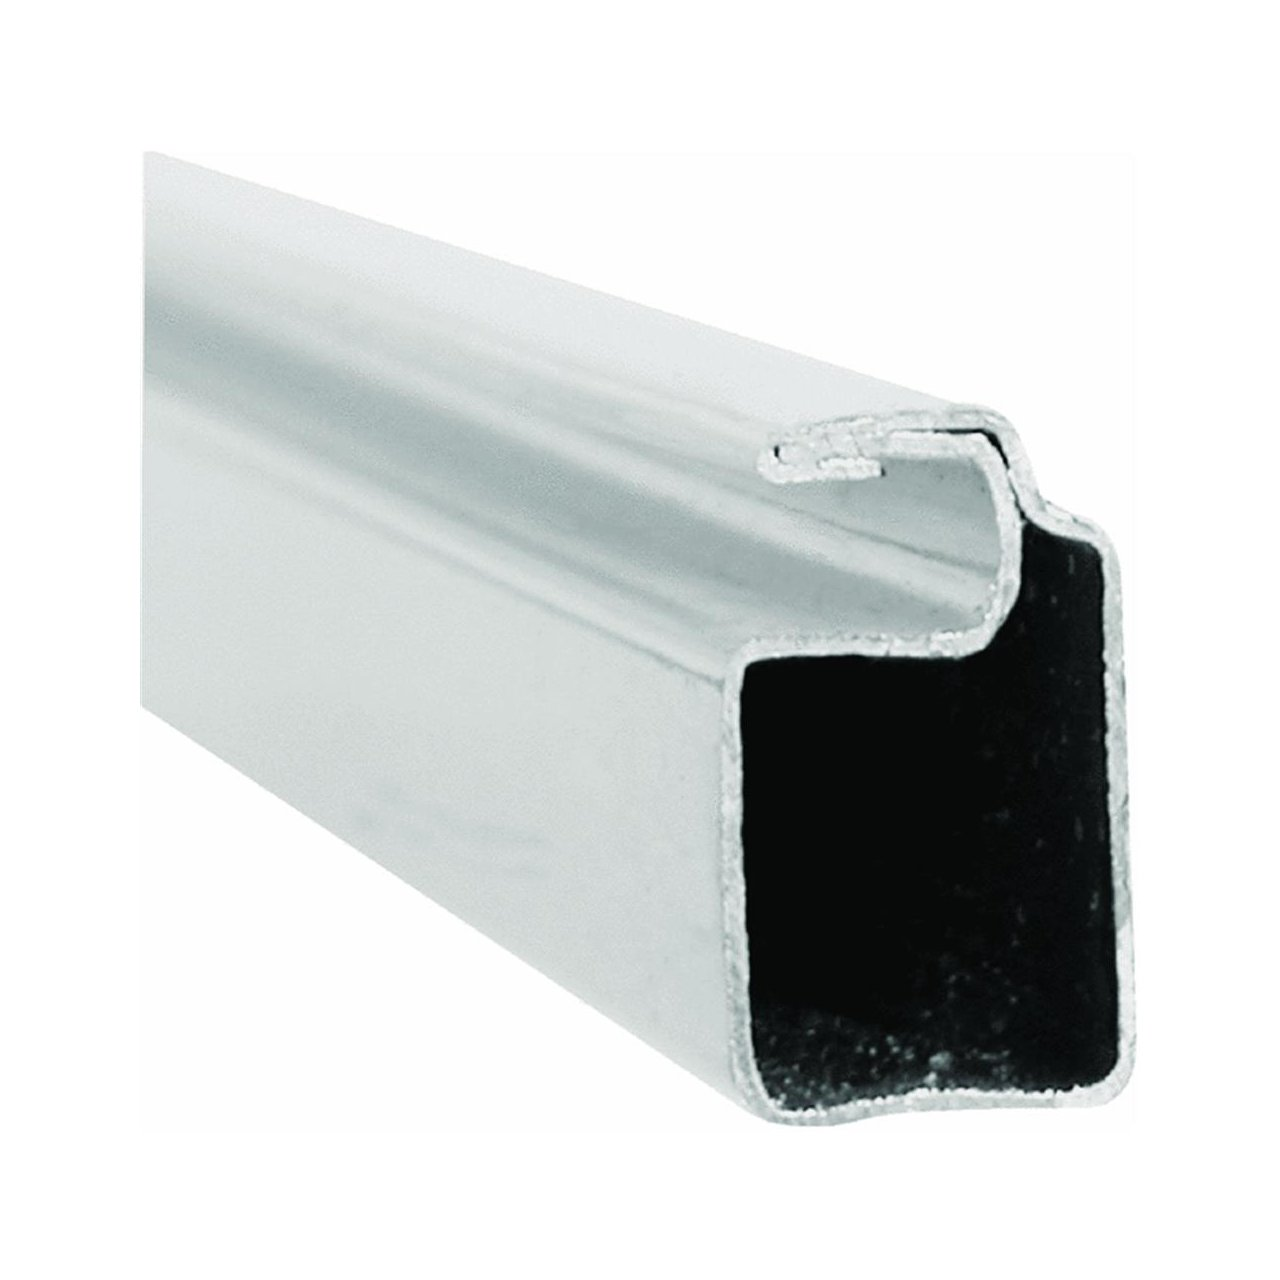 Prime Line PL 14042 Screen Frame 3/4'' X 7/16'' X 94'' .020 White - Lot of 20